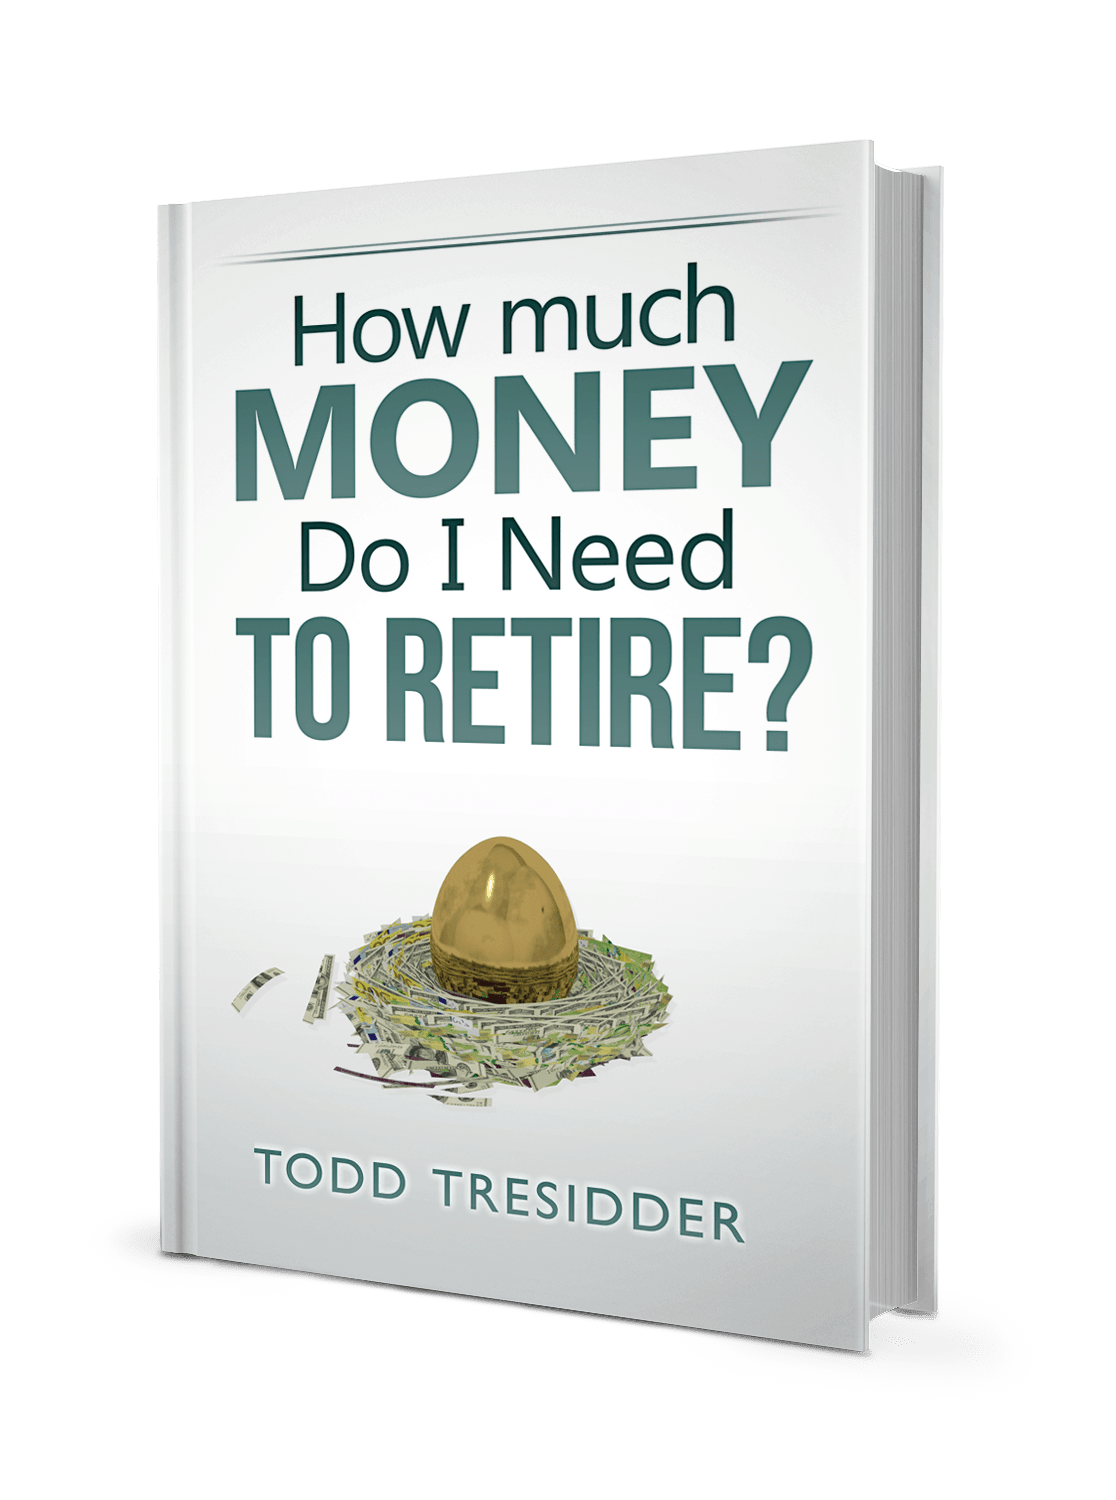 how much money do I need to retire